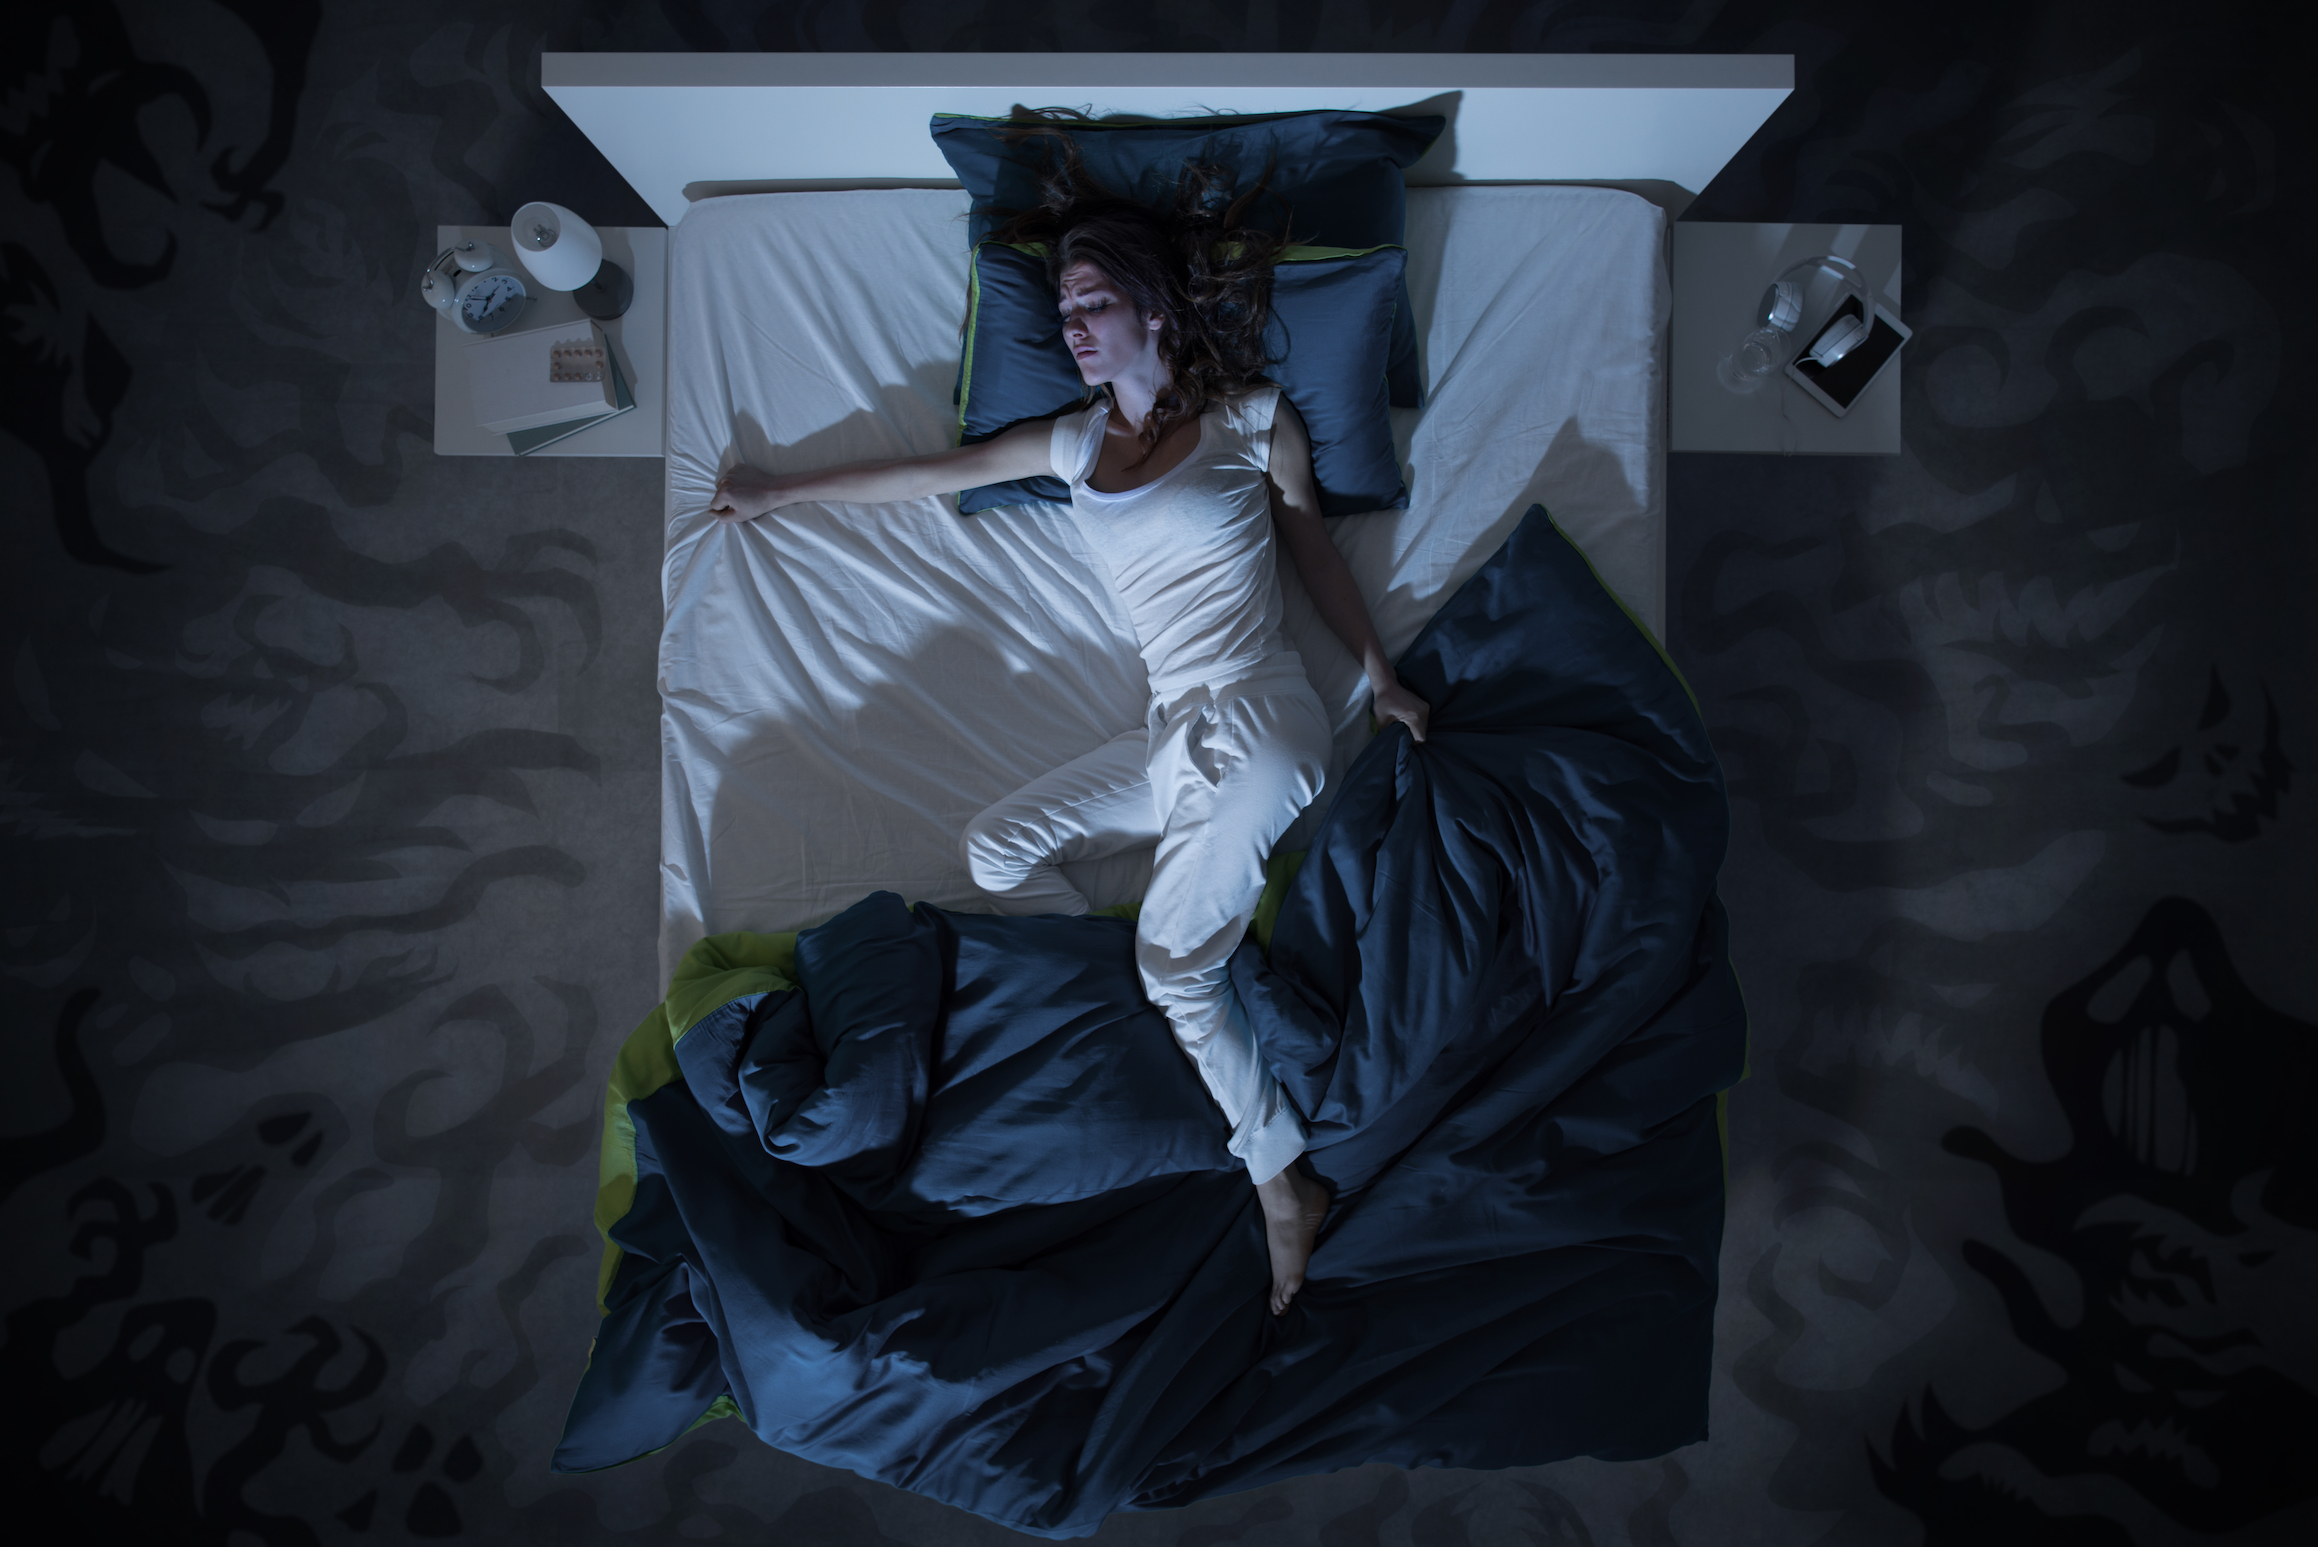 While being jarred awake in the middle of the night from frightening dreams can actually cause health issues, experts also say that confronting nightmares can be beneficial.